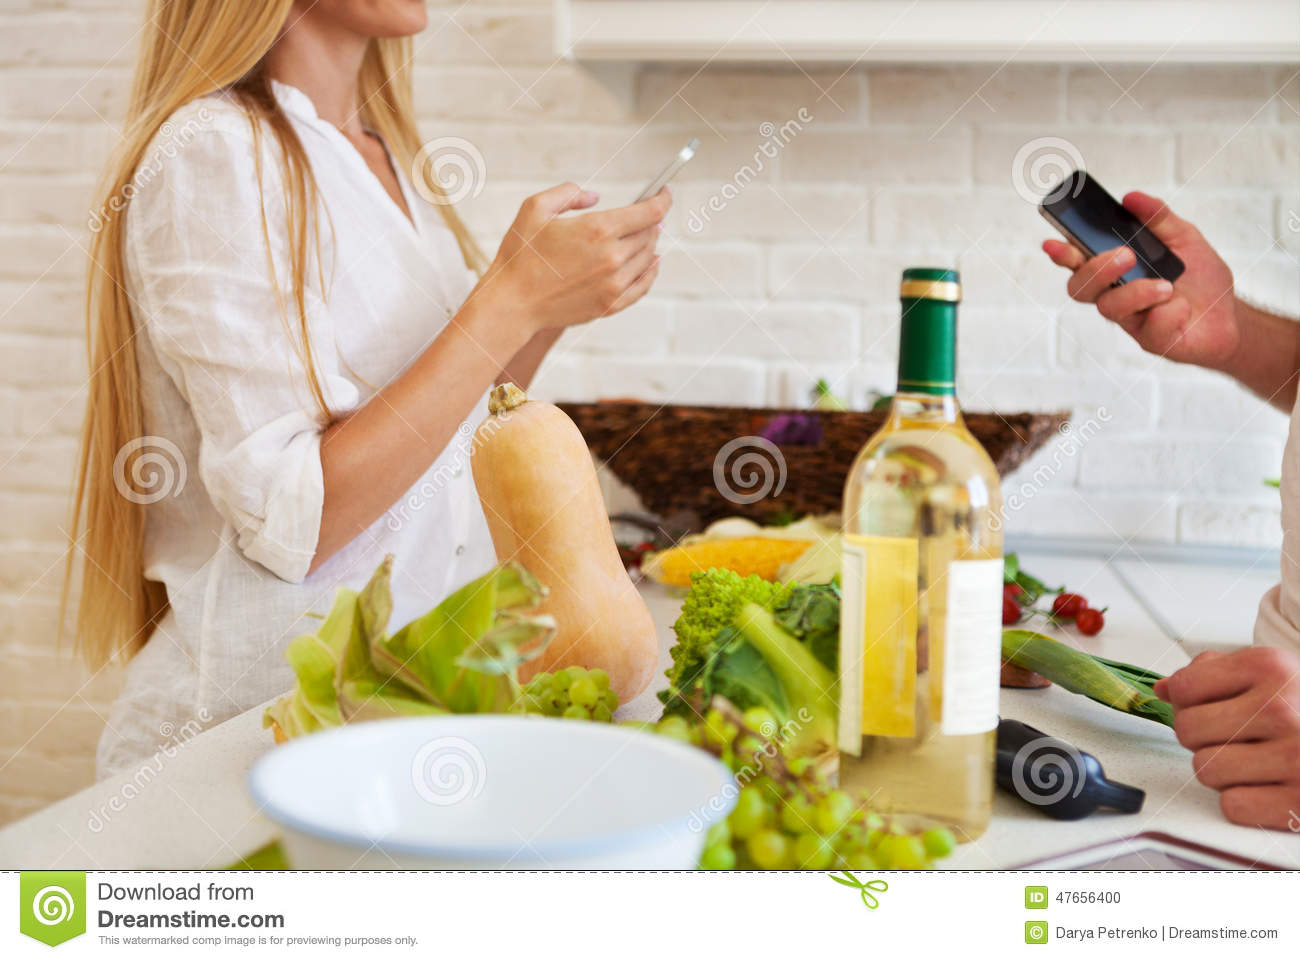 Couple cutting vegetables at the kitchen. Couple preparing dining